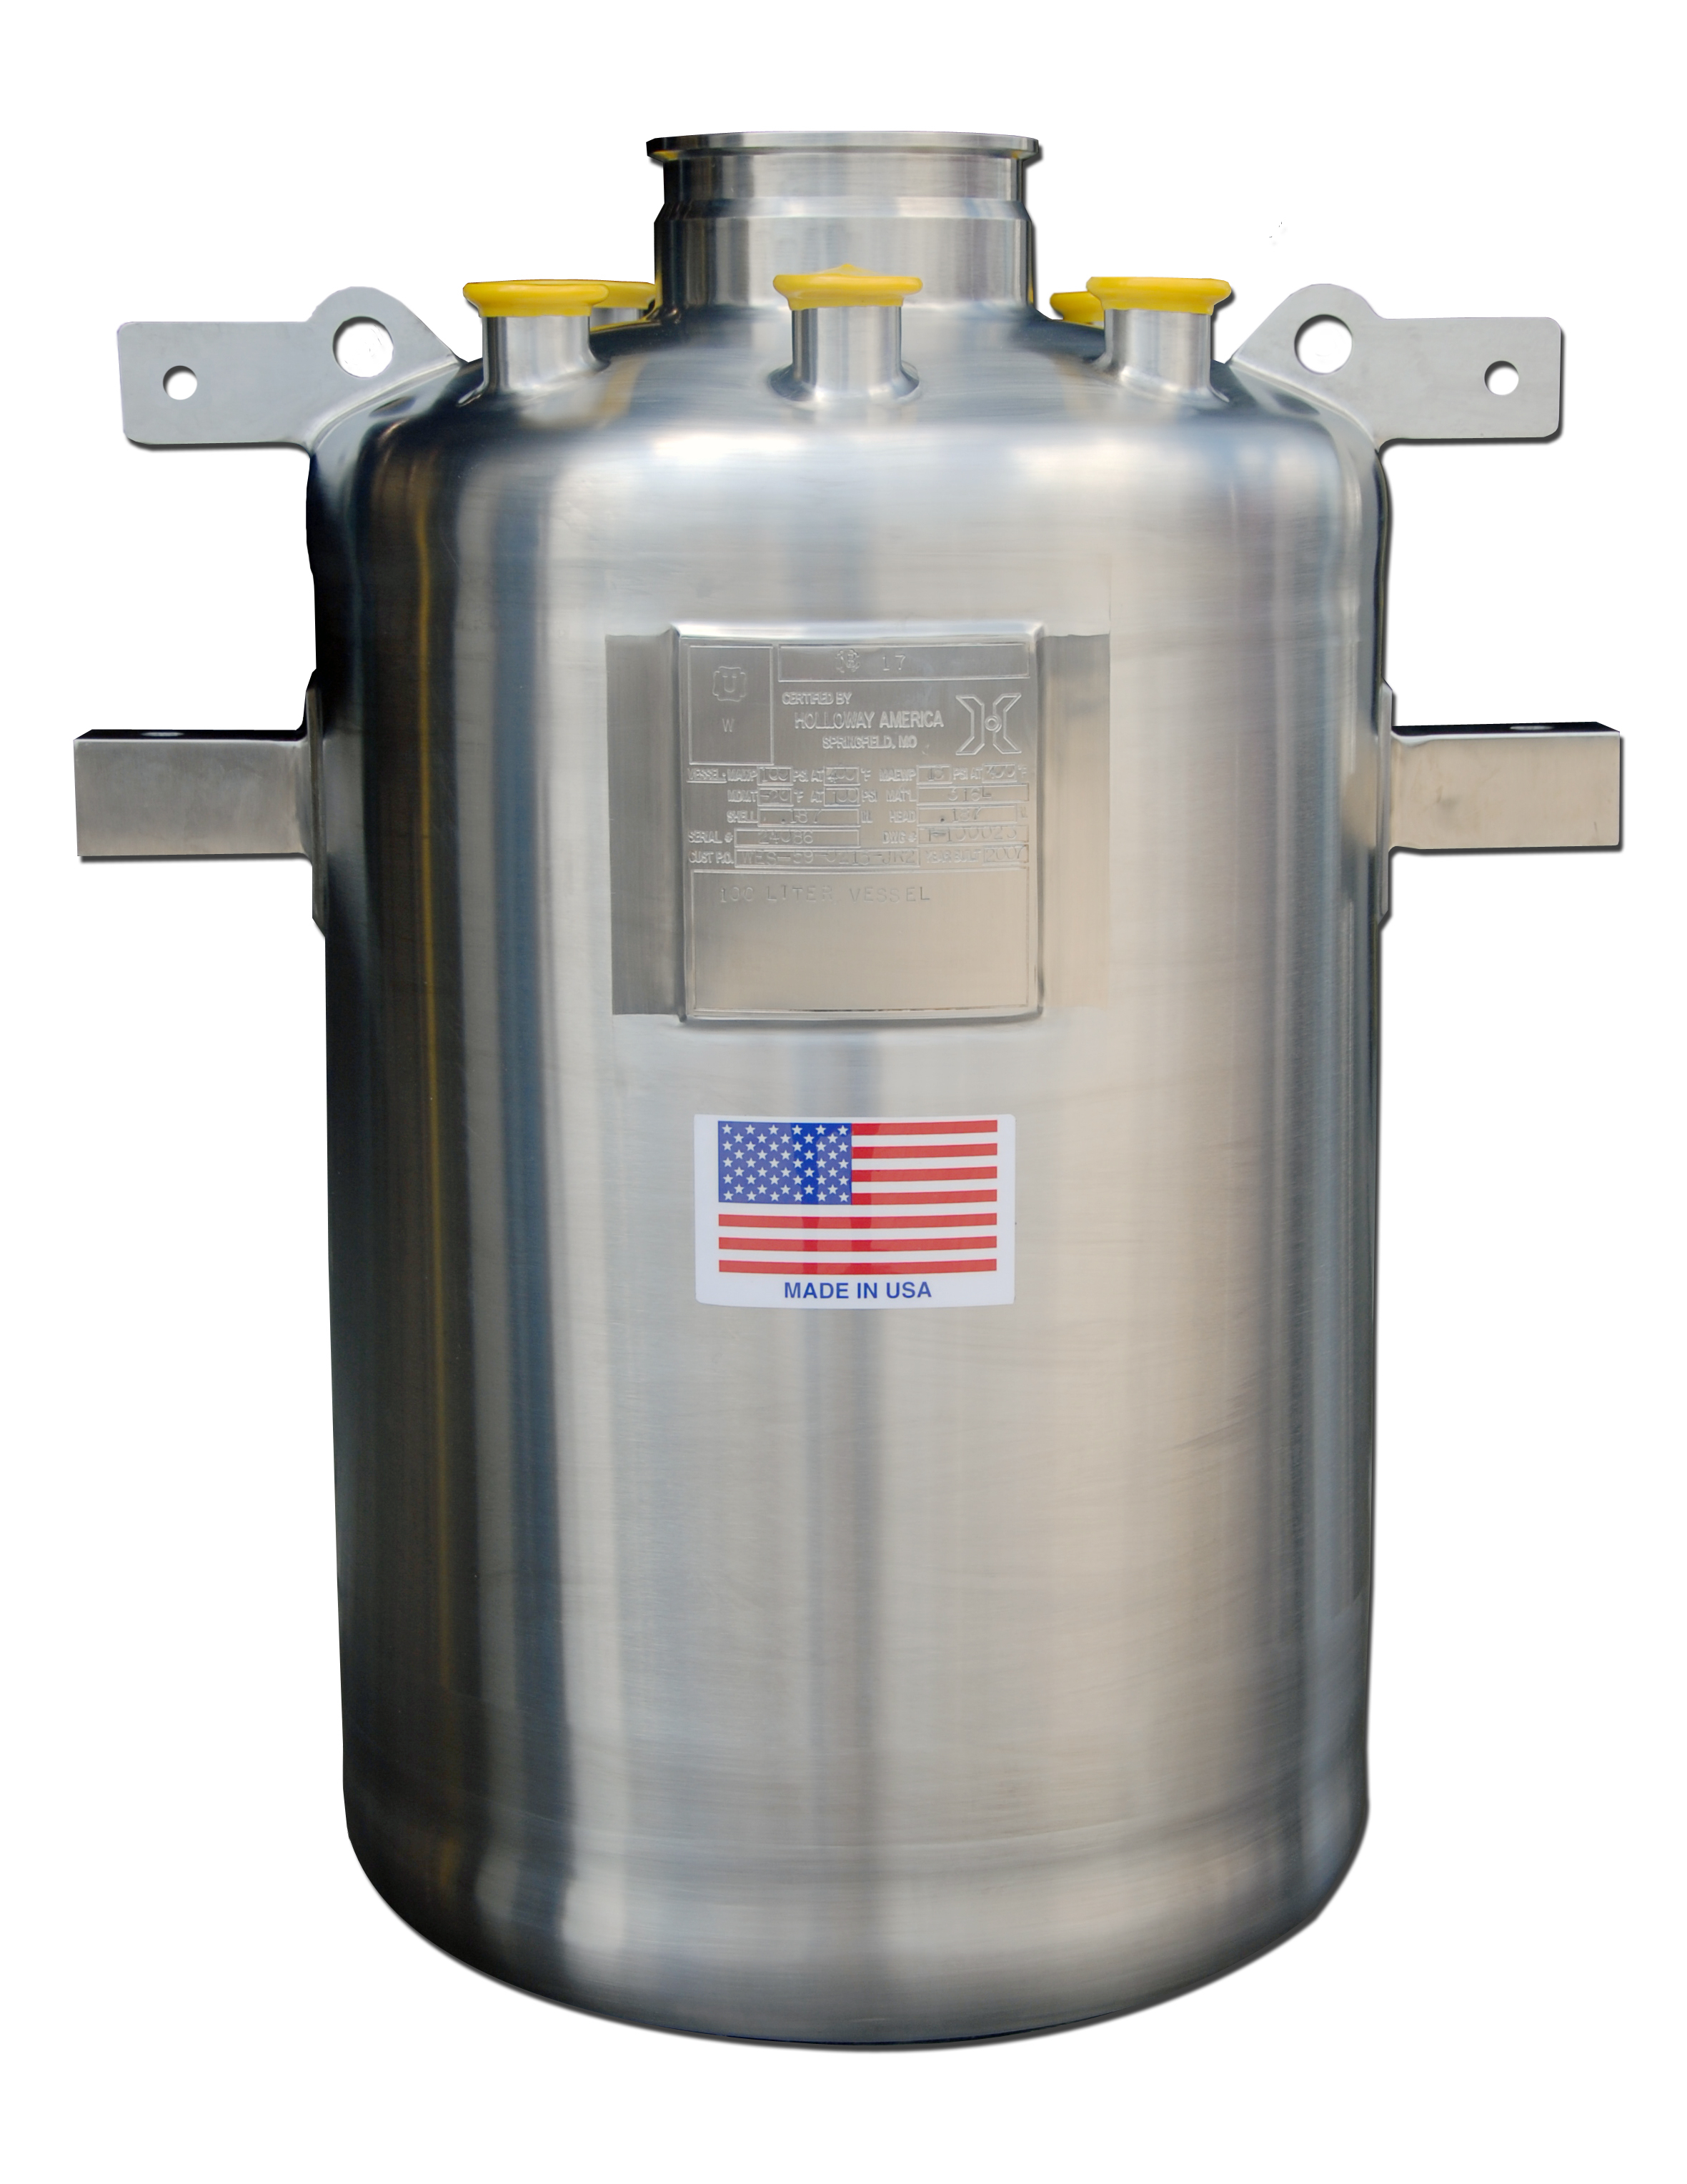 This ASME stainless steel tank meets strict regulations.